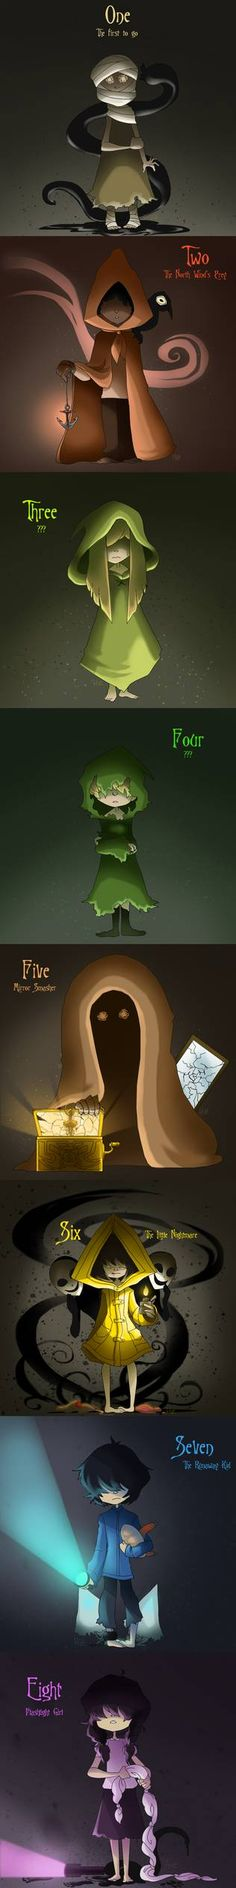 Children of the Maw by HezuNeutral on DeviantArt Little Nightmares Fanart, Scary, Creepy, The Hanged Man, Otaku, Rpg Horror Games, Arte Horror, Video Game Art, Indie Games